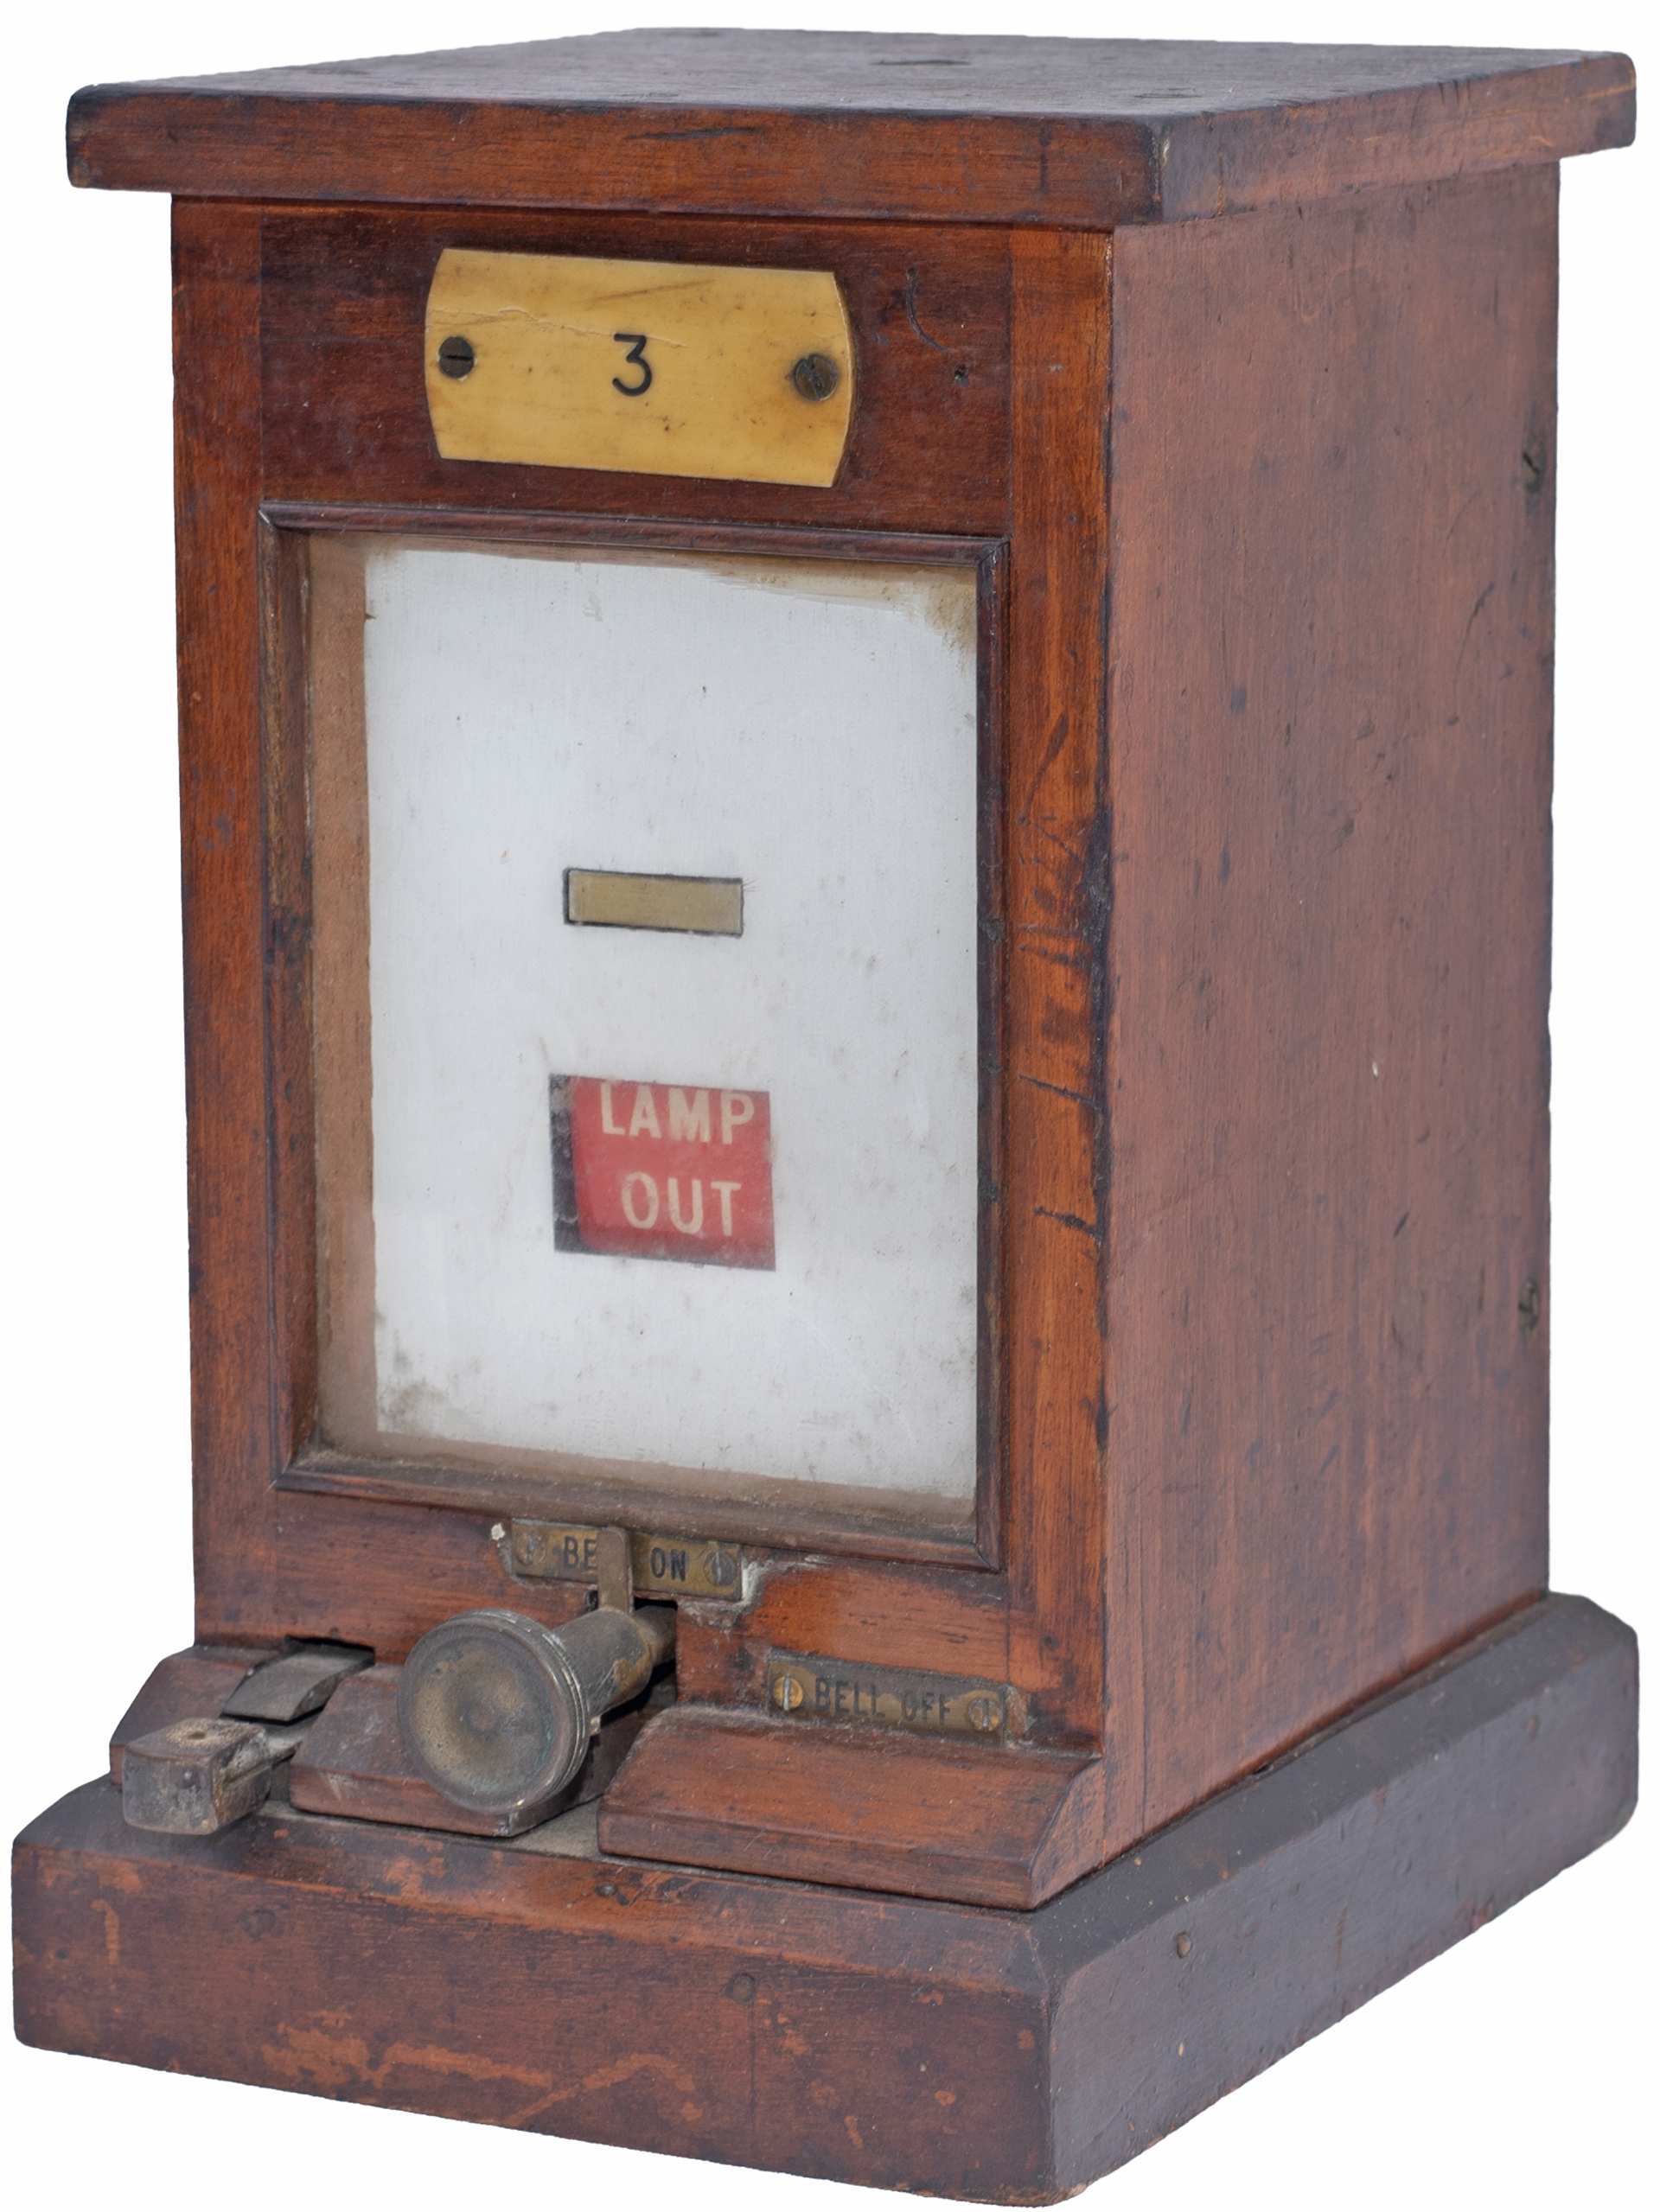 GWR mahogany cased signal Lamp In / Out repeater, ivorine plated 3. Complete and flag moves freely